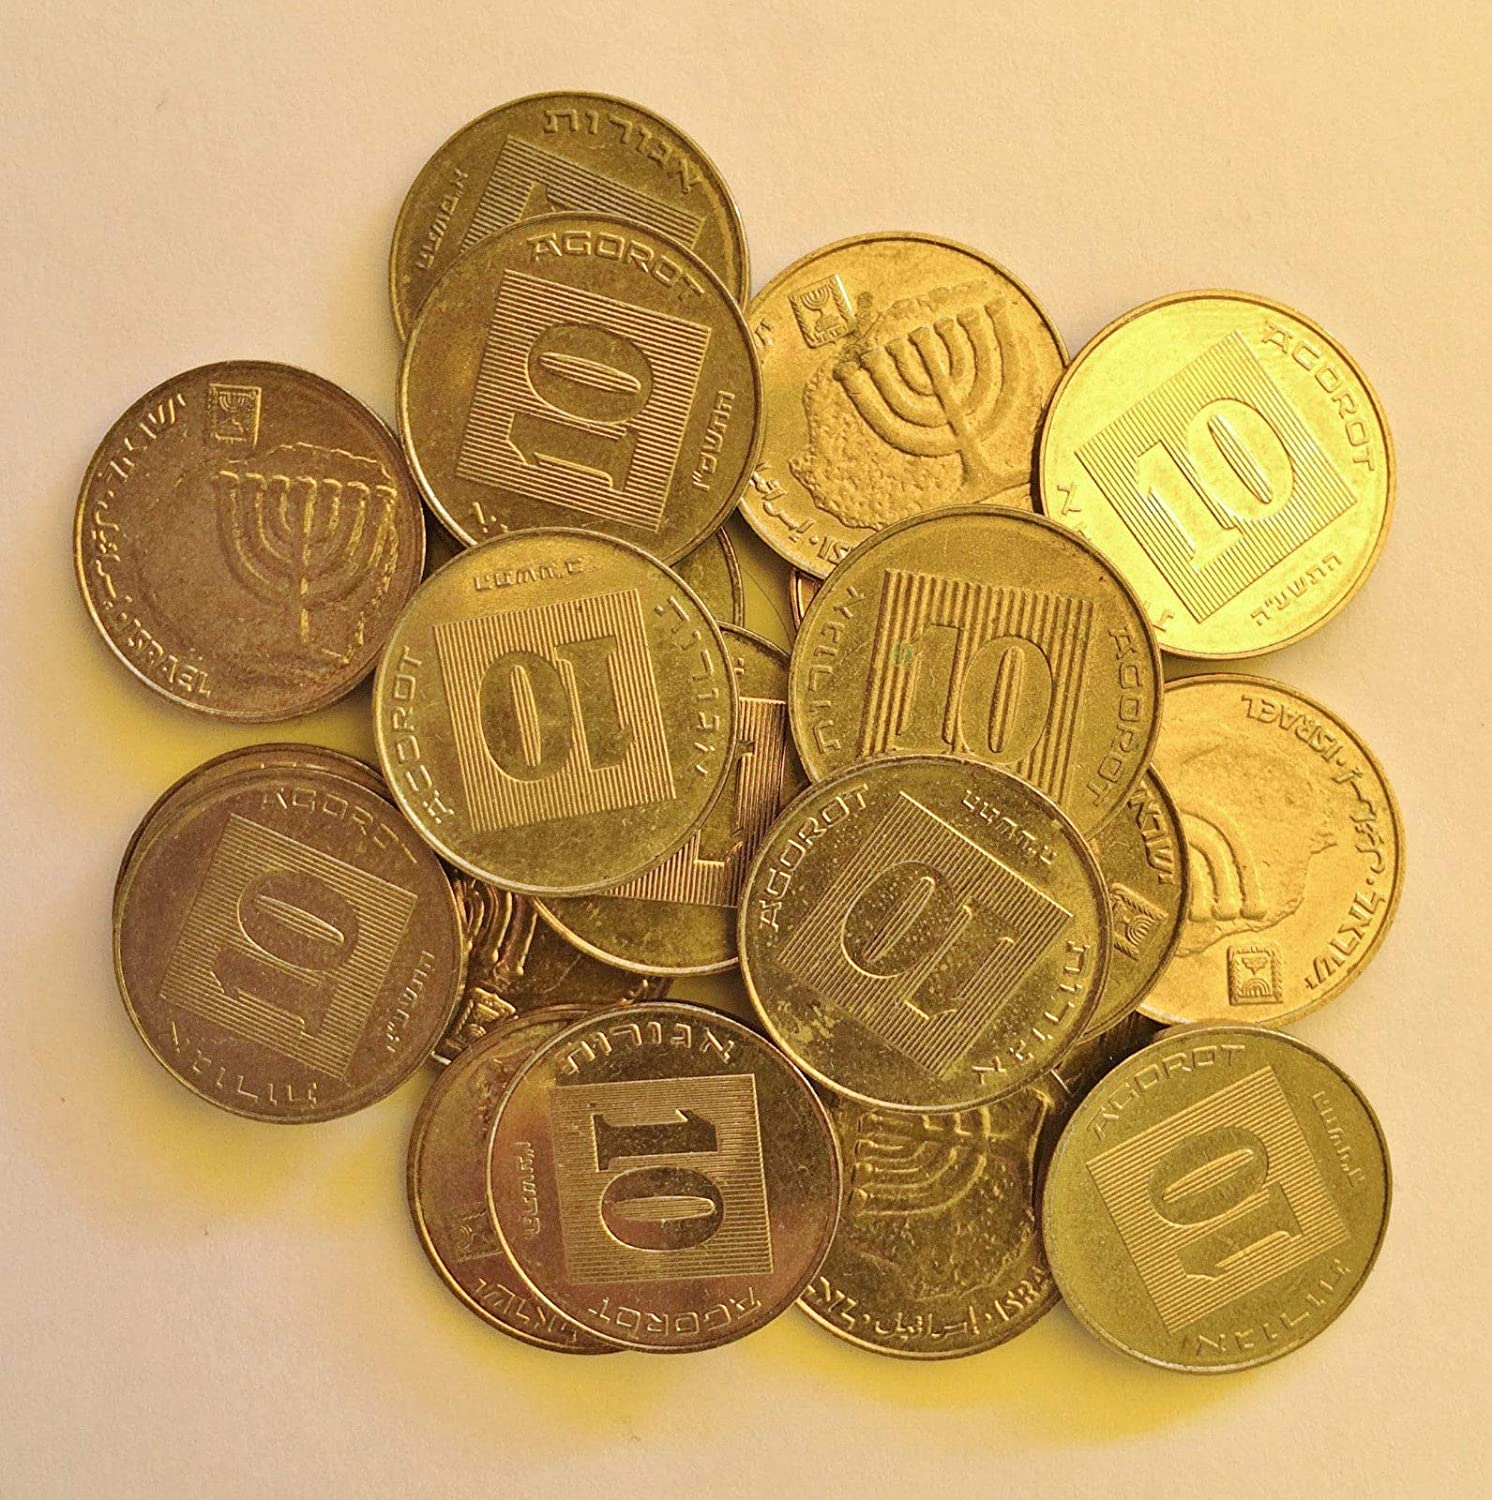 Old Israeli Sheqel Coin Collection Judaica Lot of 30 Israel Coins 1 One Agora